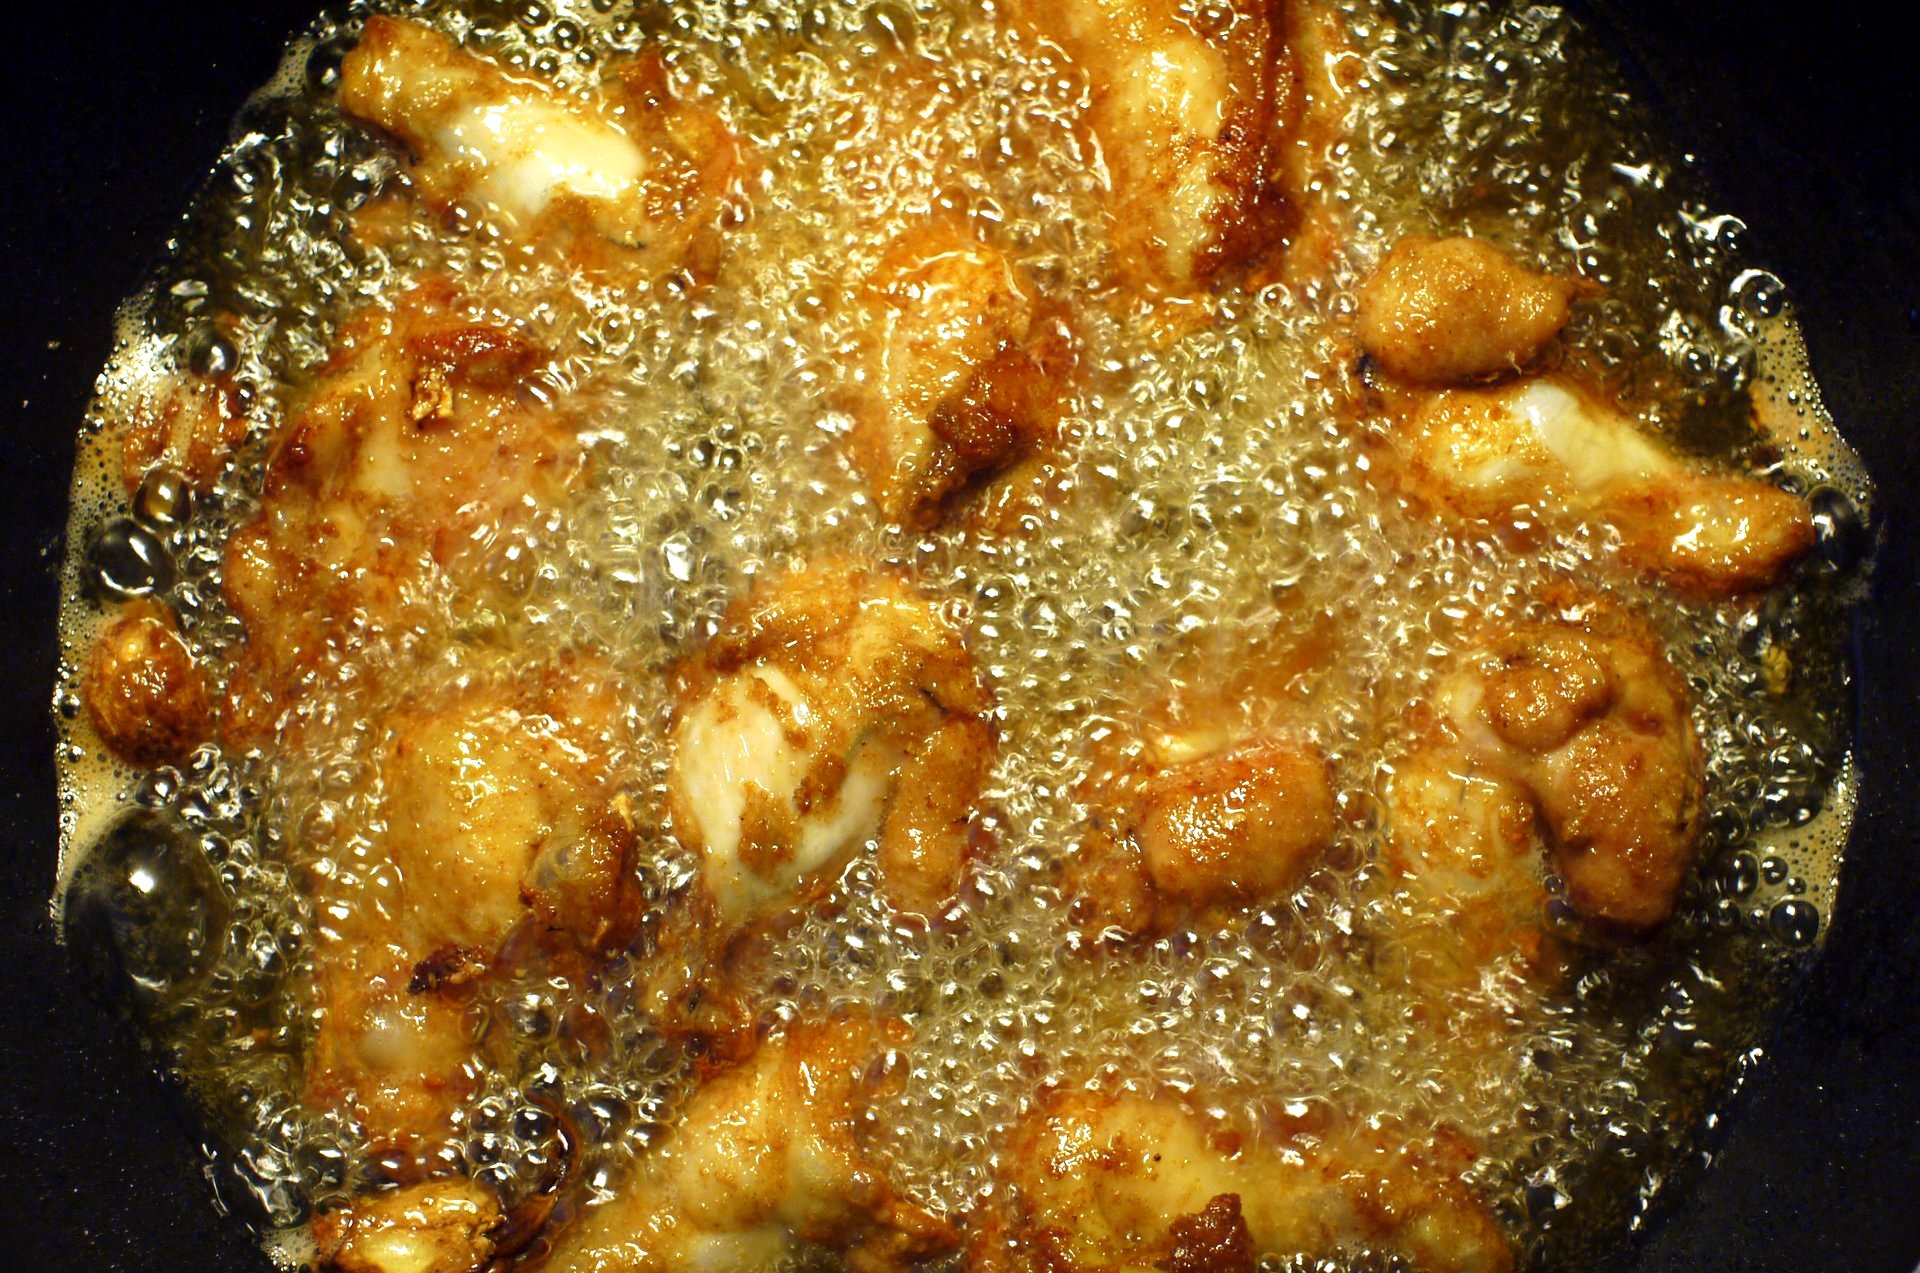 frying-chicken-cooking-with-oil